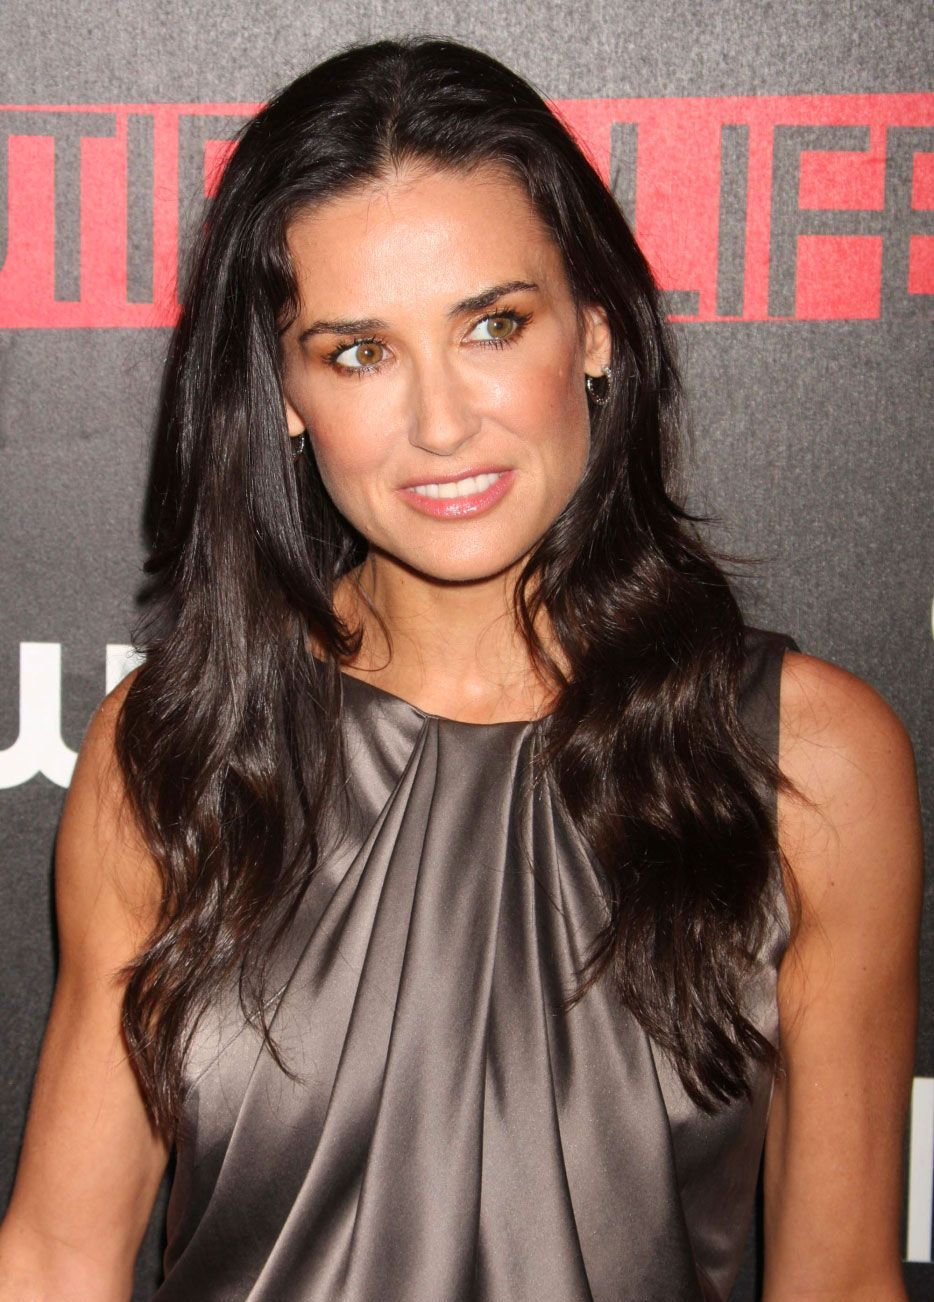 Demi+Moore+Workout+and+Diet1.jpg